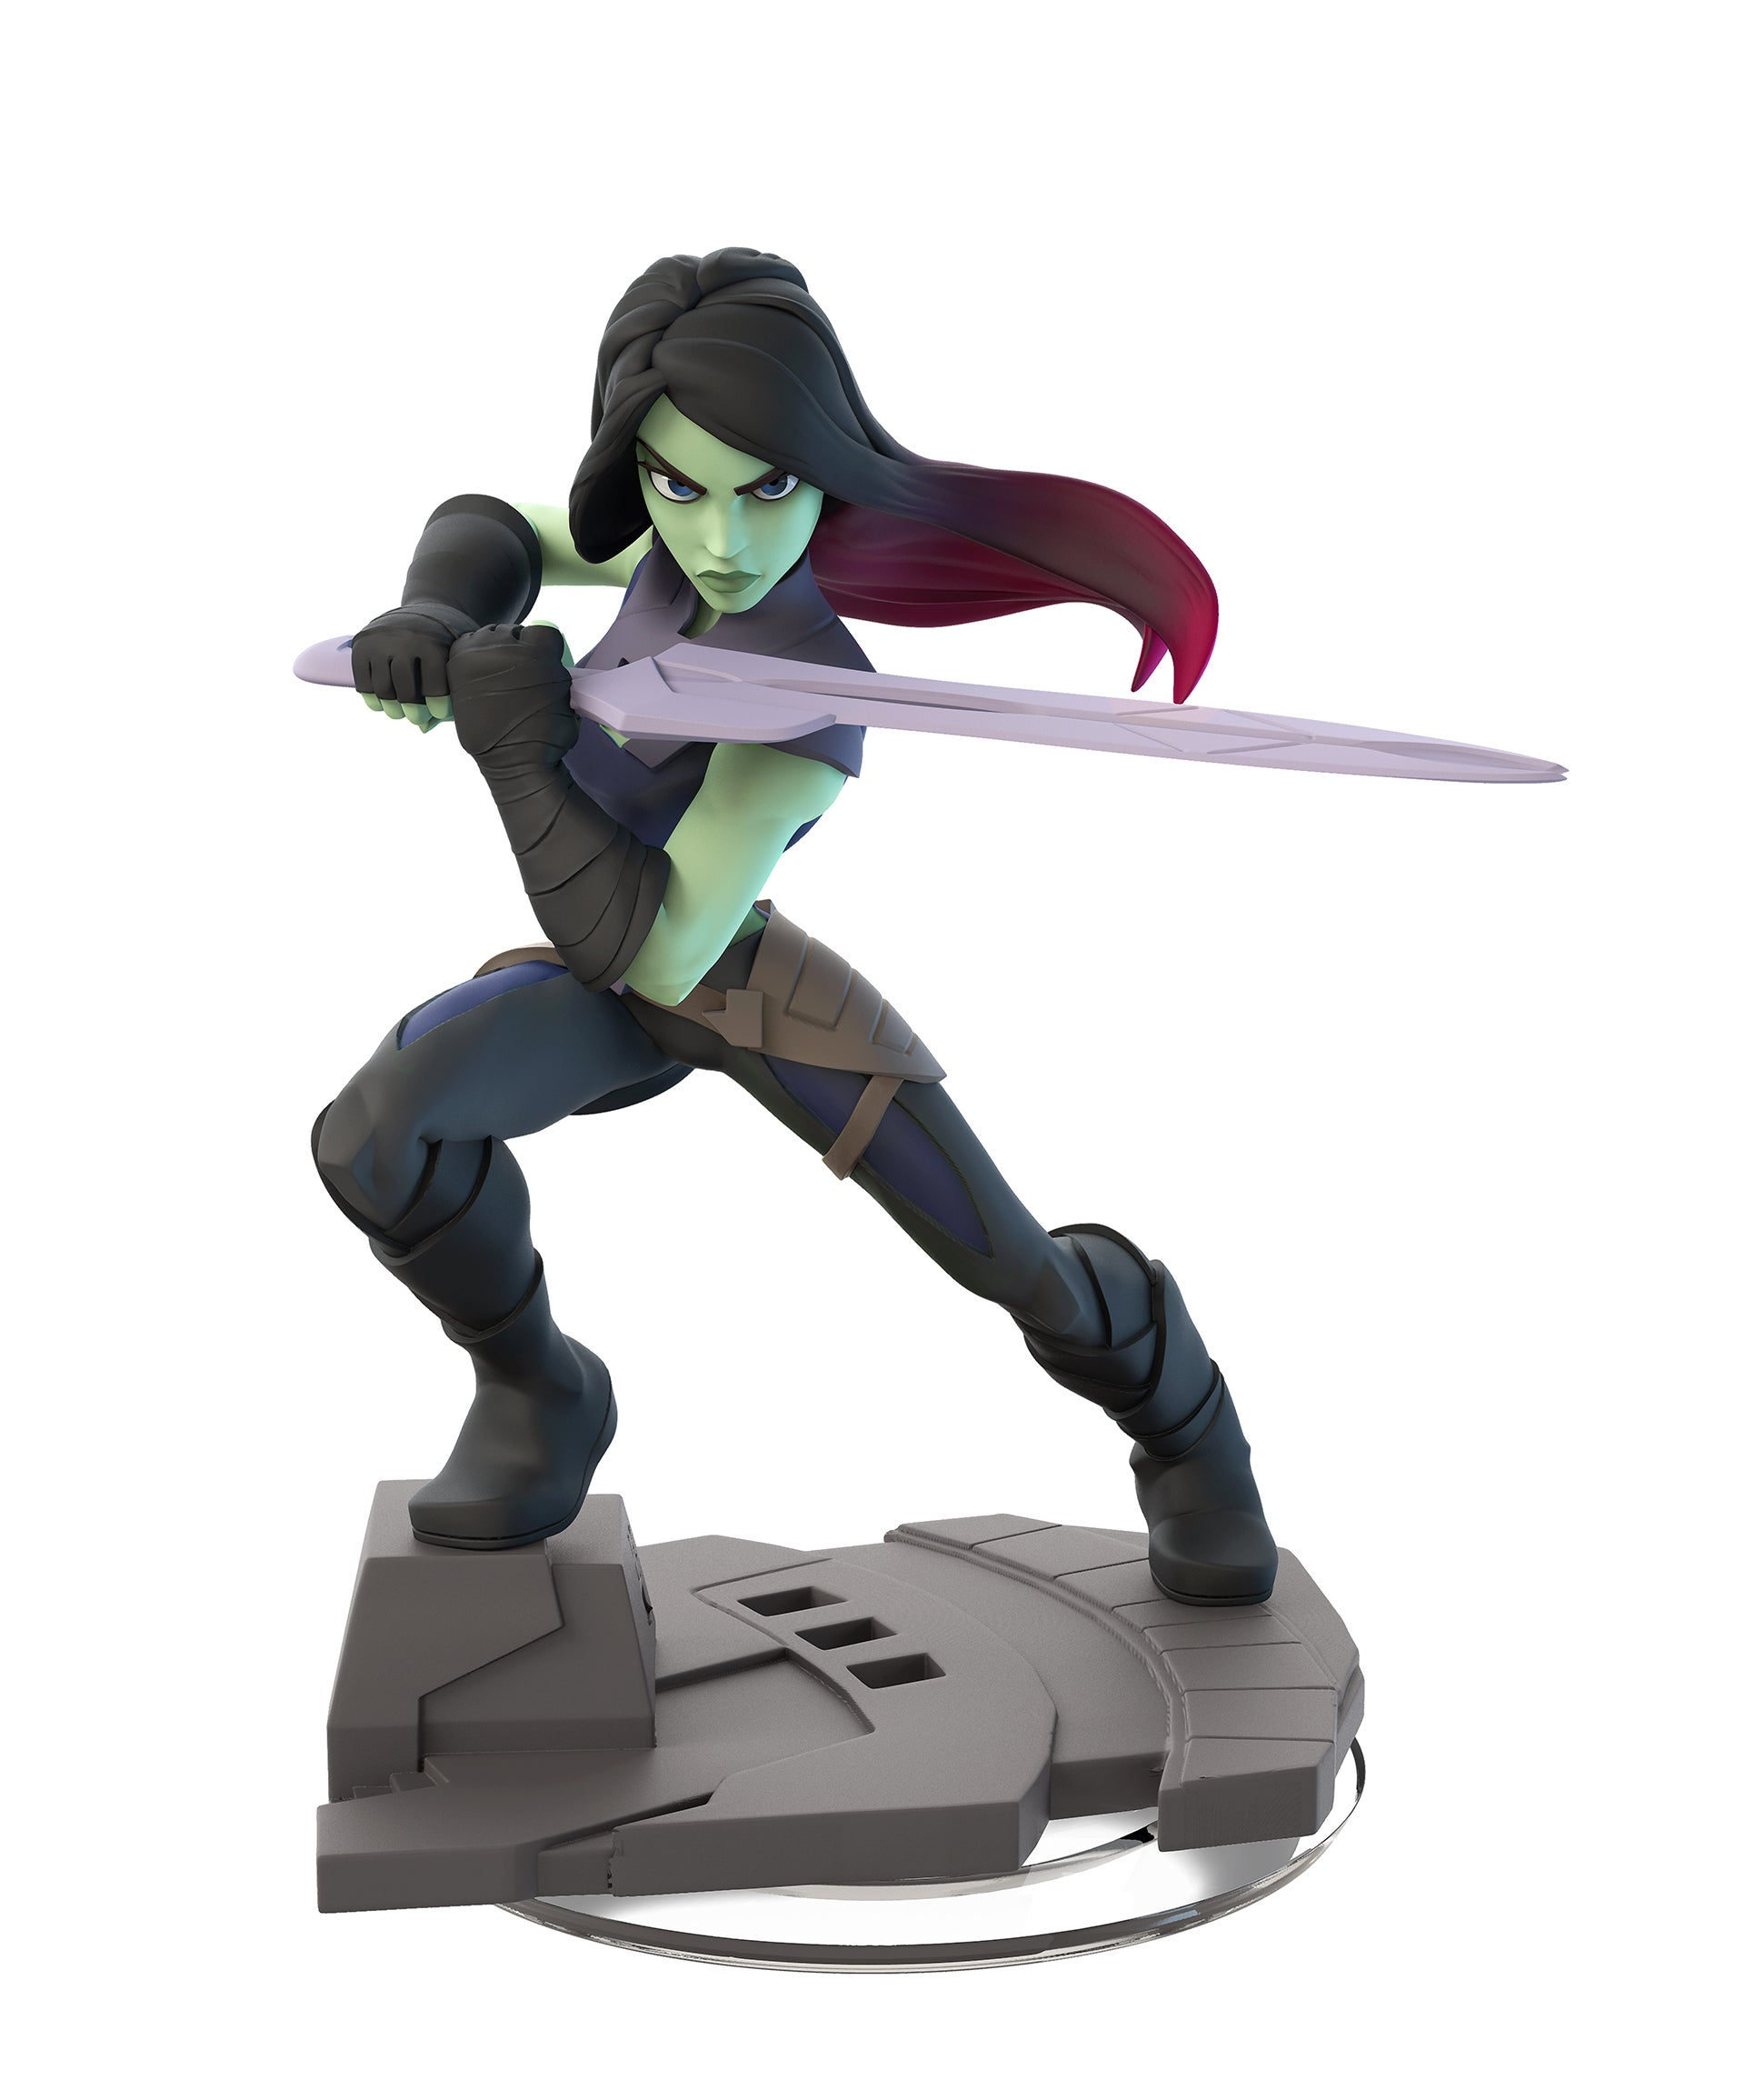 Of Course Guardians Of The Galaxy Gets Its Own Disney Infinity Playset